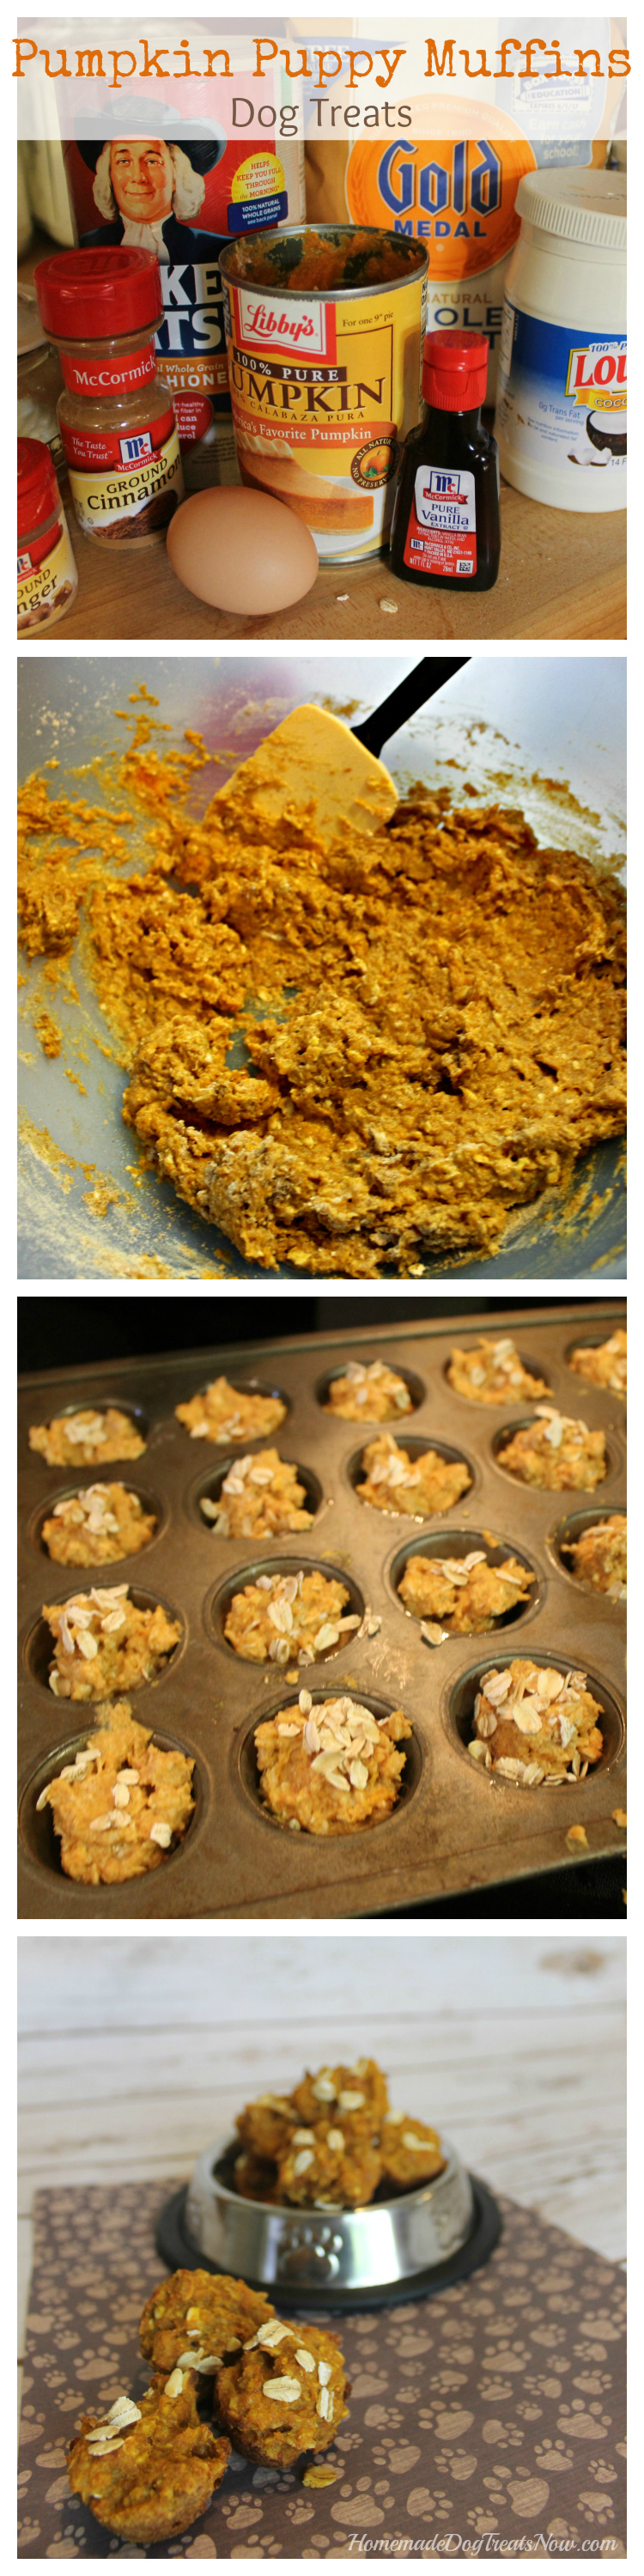 Pumpkin Puppy Muffins Dog Treats